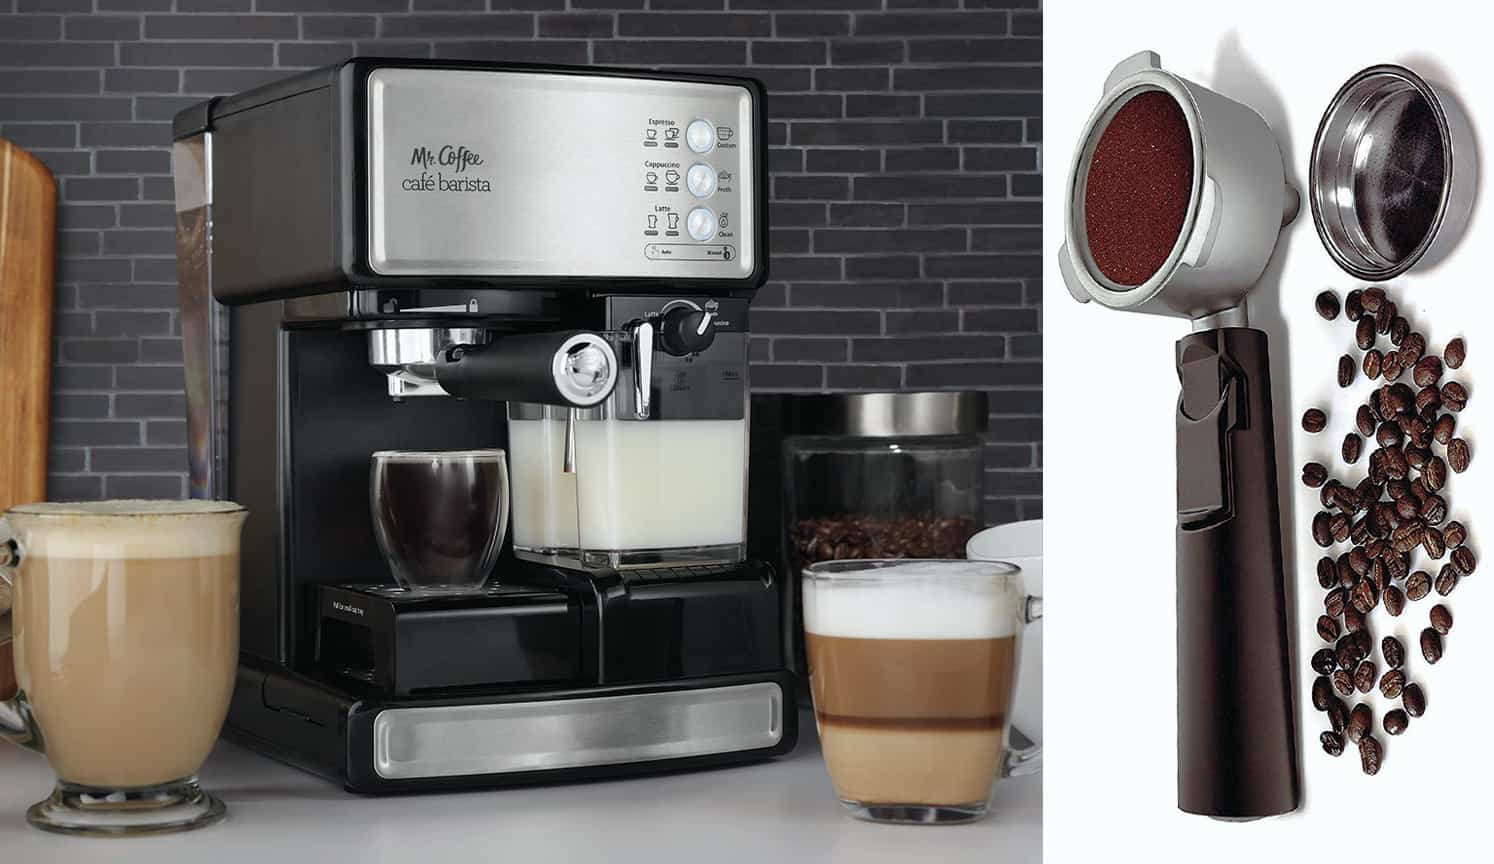 Best Expresso Coffee Maker as the first related product of the Best Home Coffee Maker